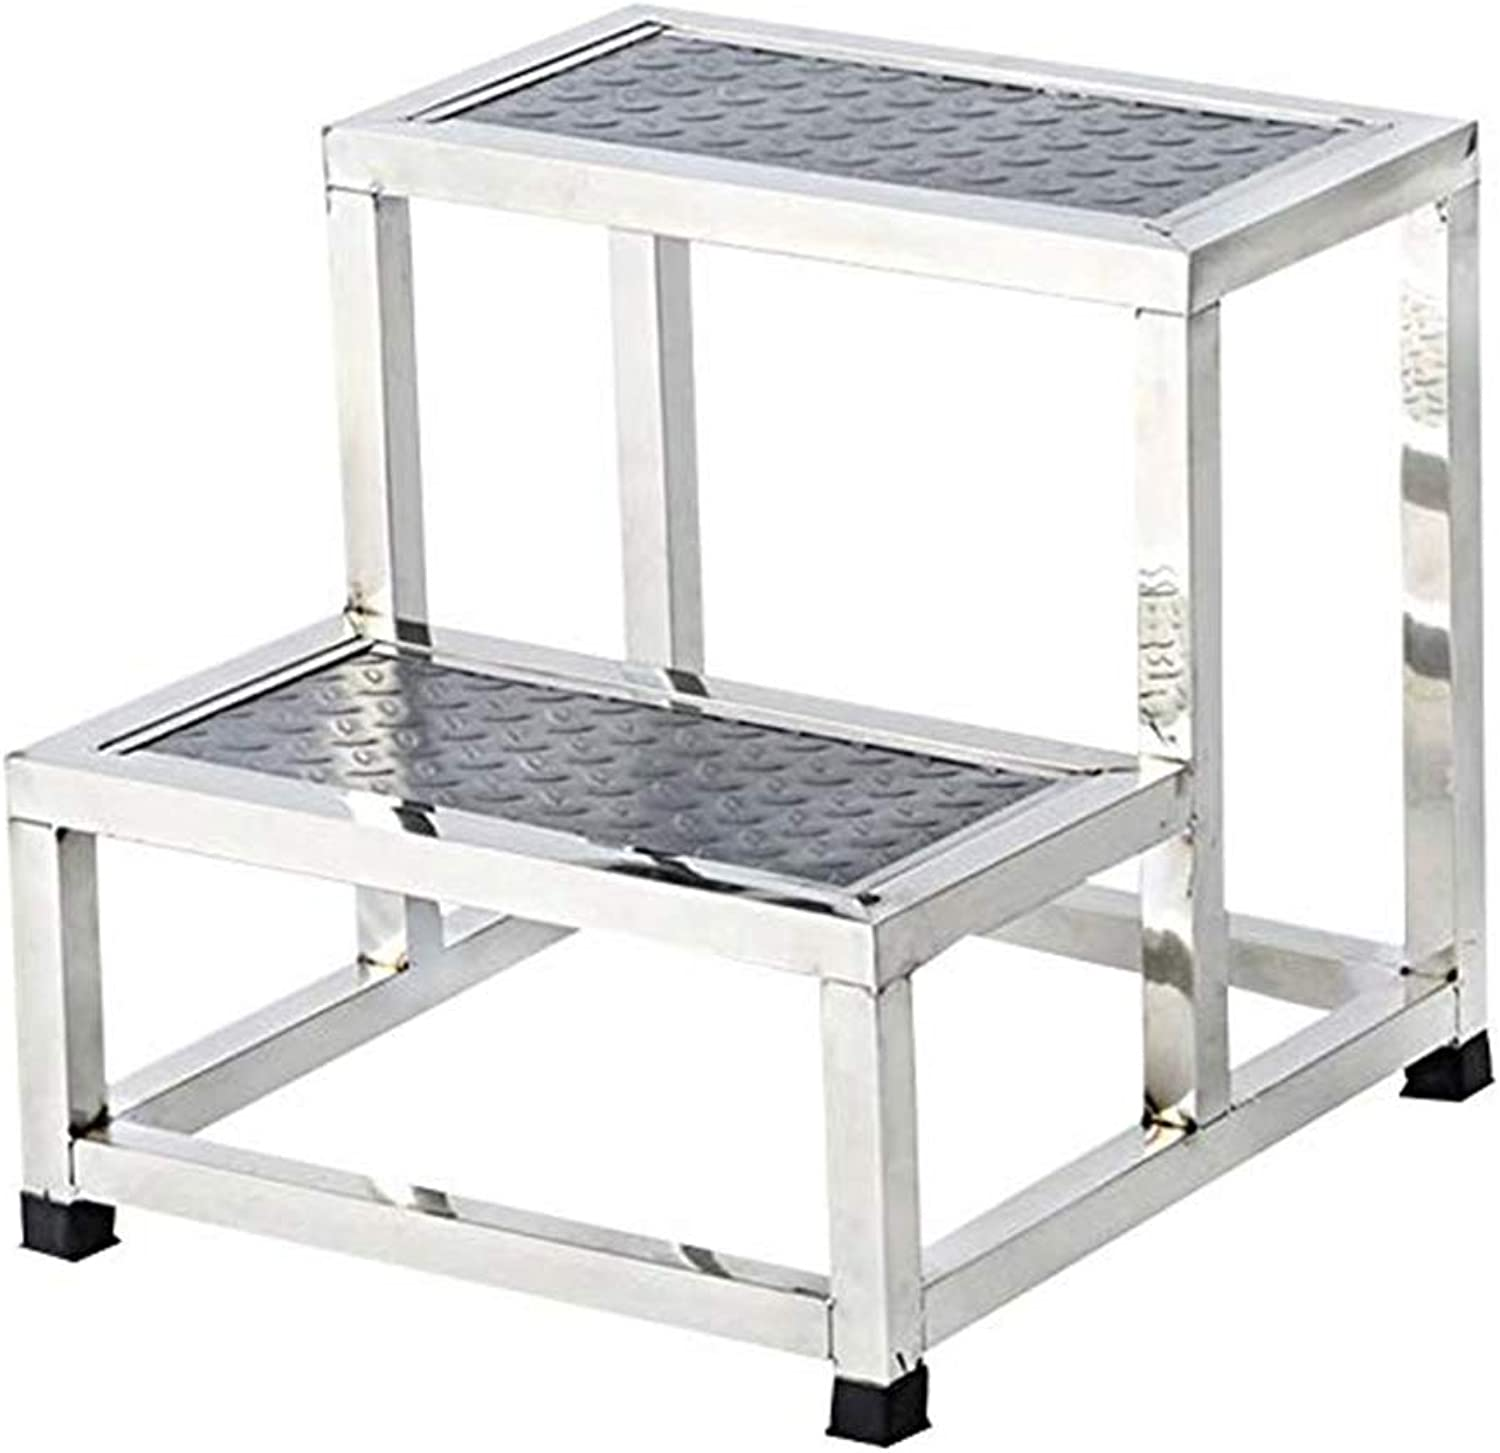 CAIJUN Ladder Stool Household Multipurpose Stainless Steel Whole Outfit Non-Slip Climbing 2 Step Ladder, 2 Styles, 2 Sizes Dual-use (color   A, Size   40x45x40cm)